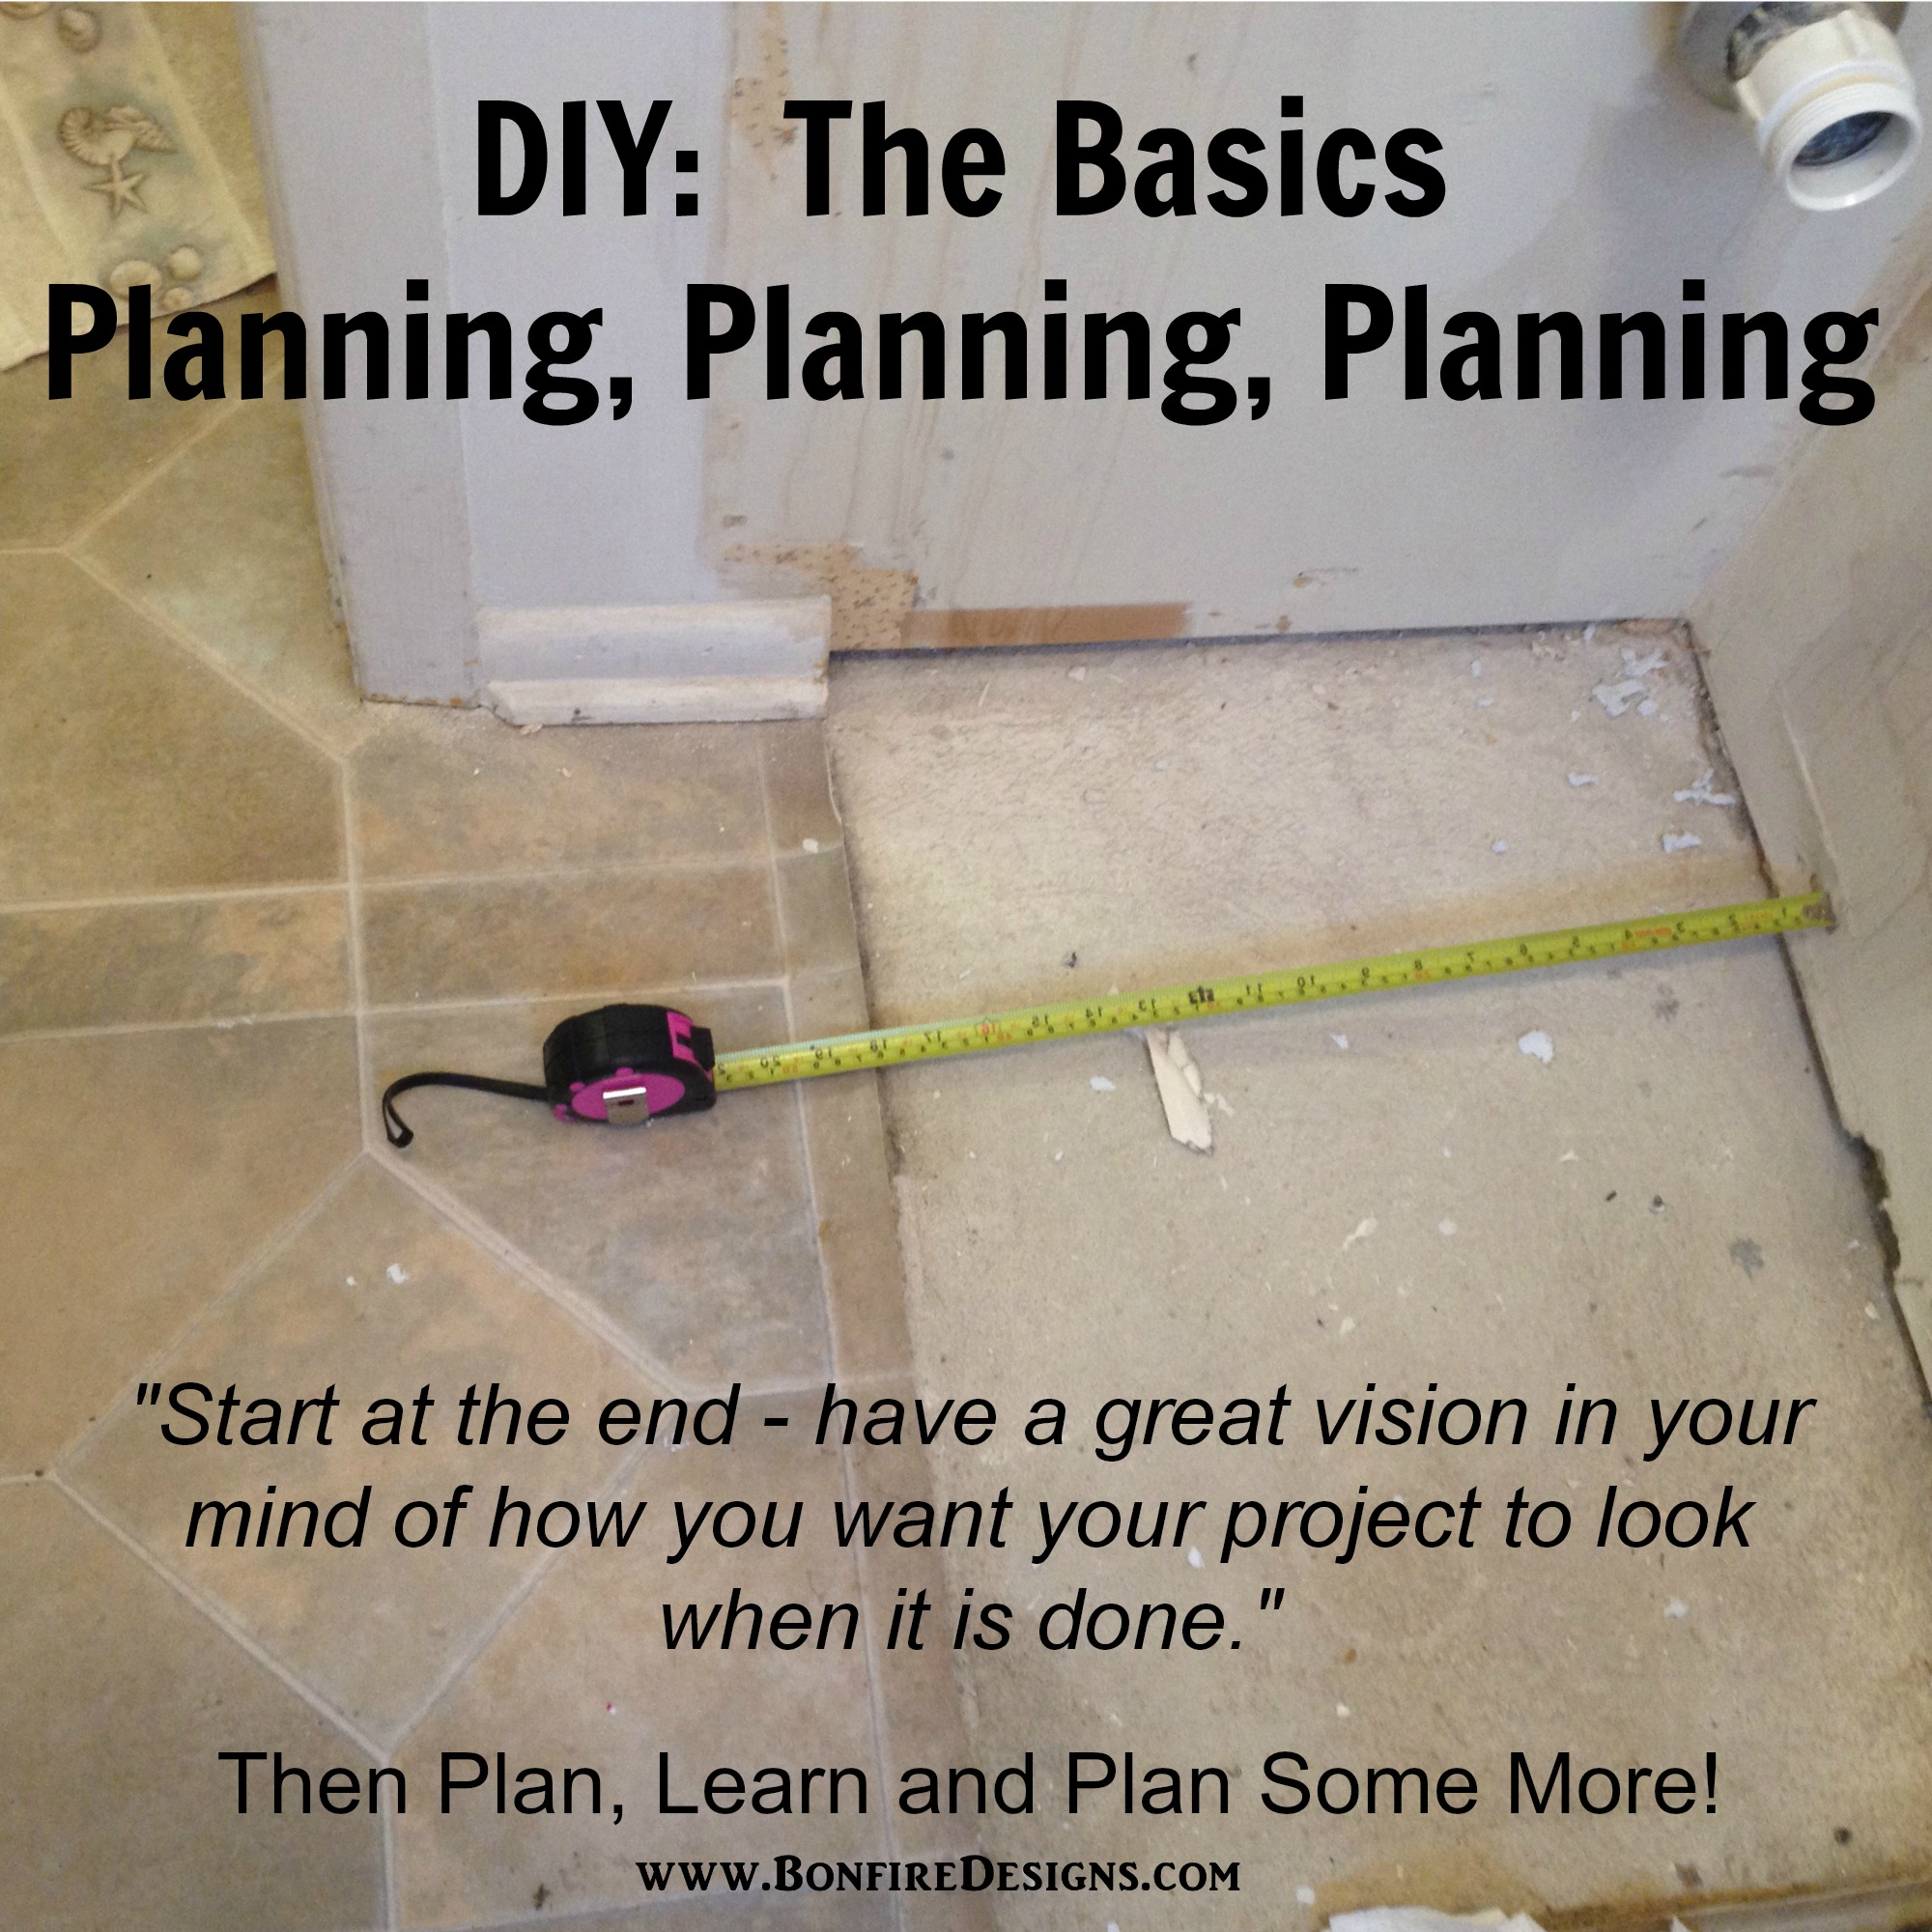 DIY Basics Have A Plan